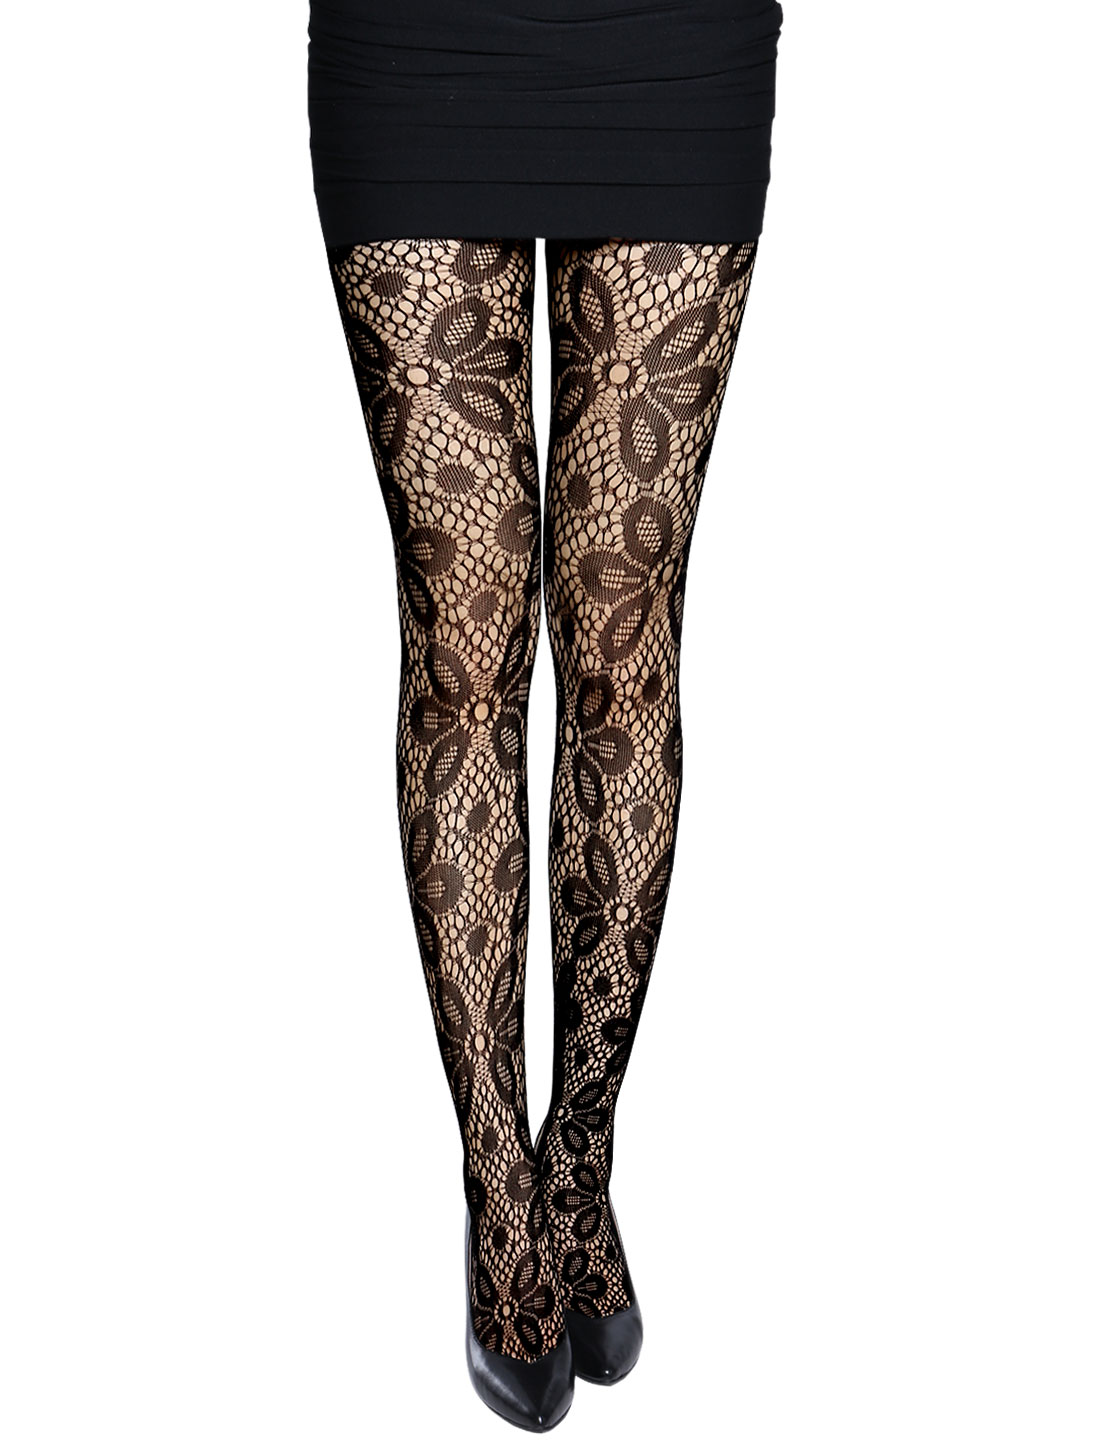 Women Stretchy Flower Design Hollow Out Sexy Fishnet Pantyhose Black XS